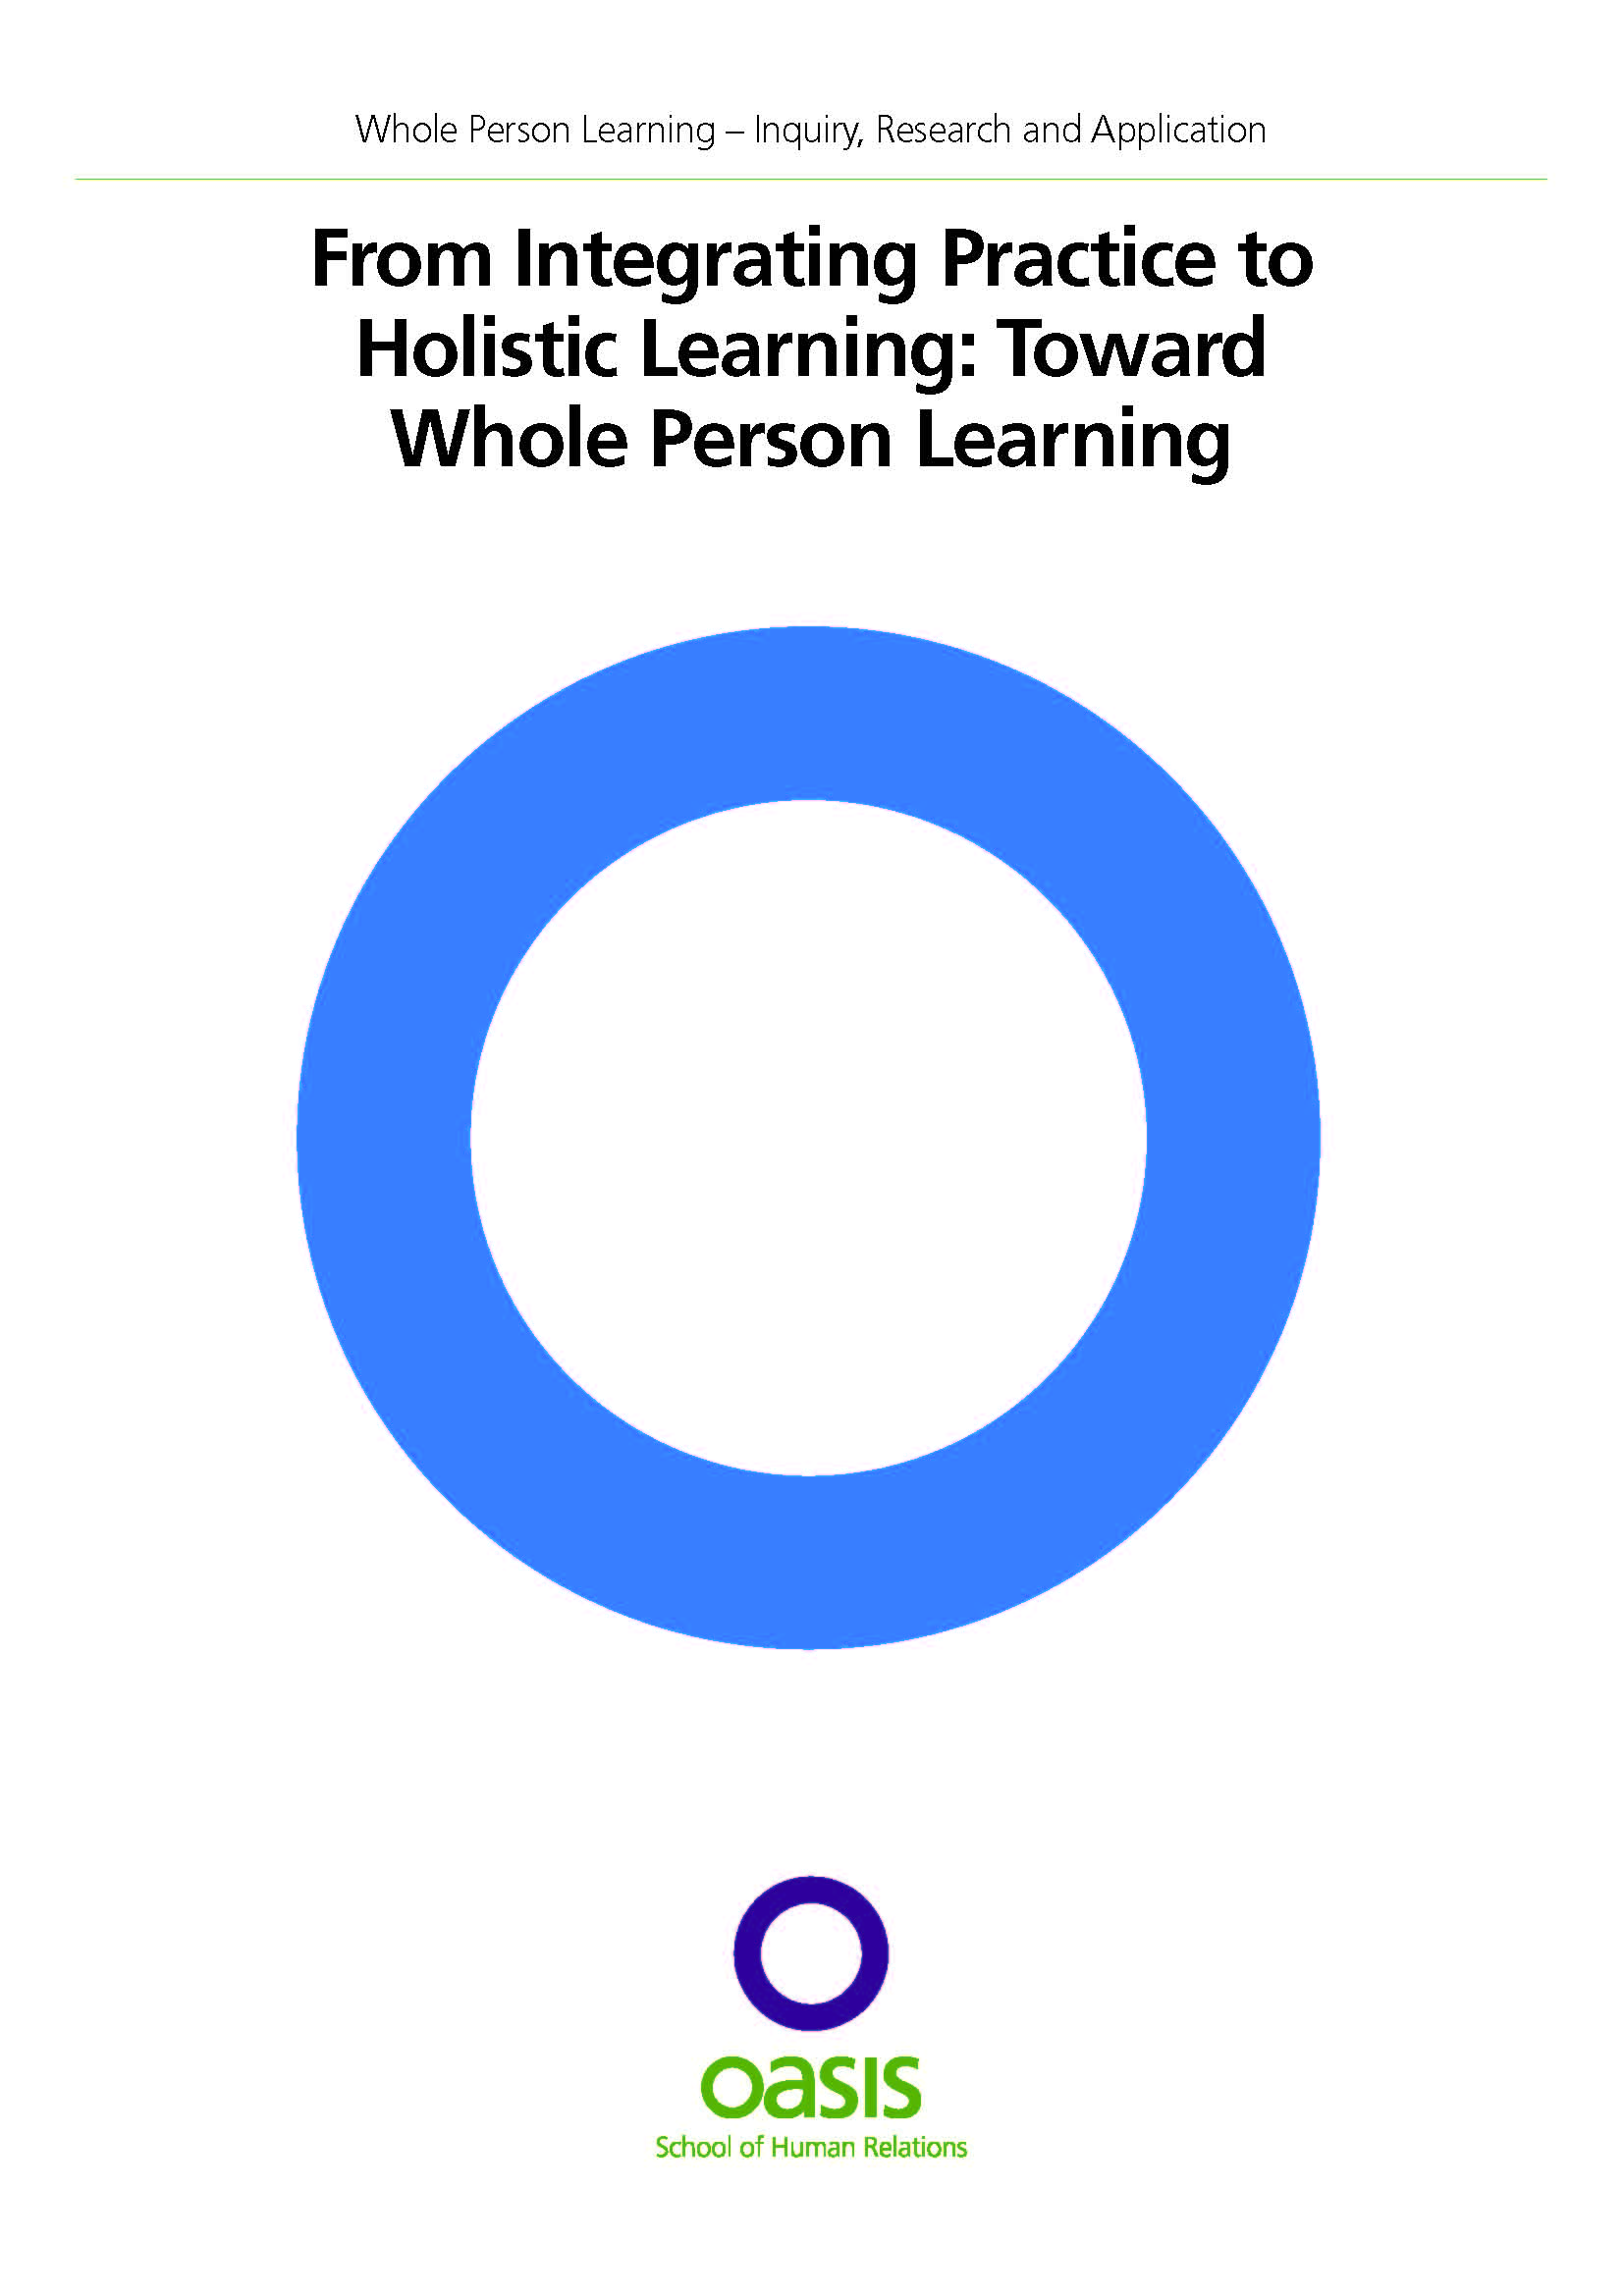 From Integrated Practice to Holistic Learning: Toward Whole Person Learning